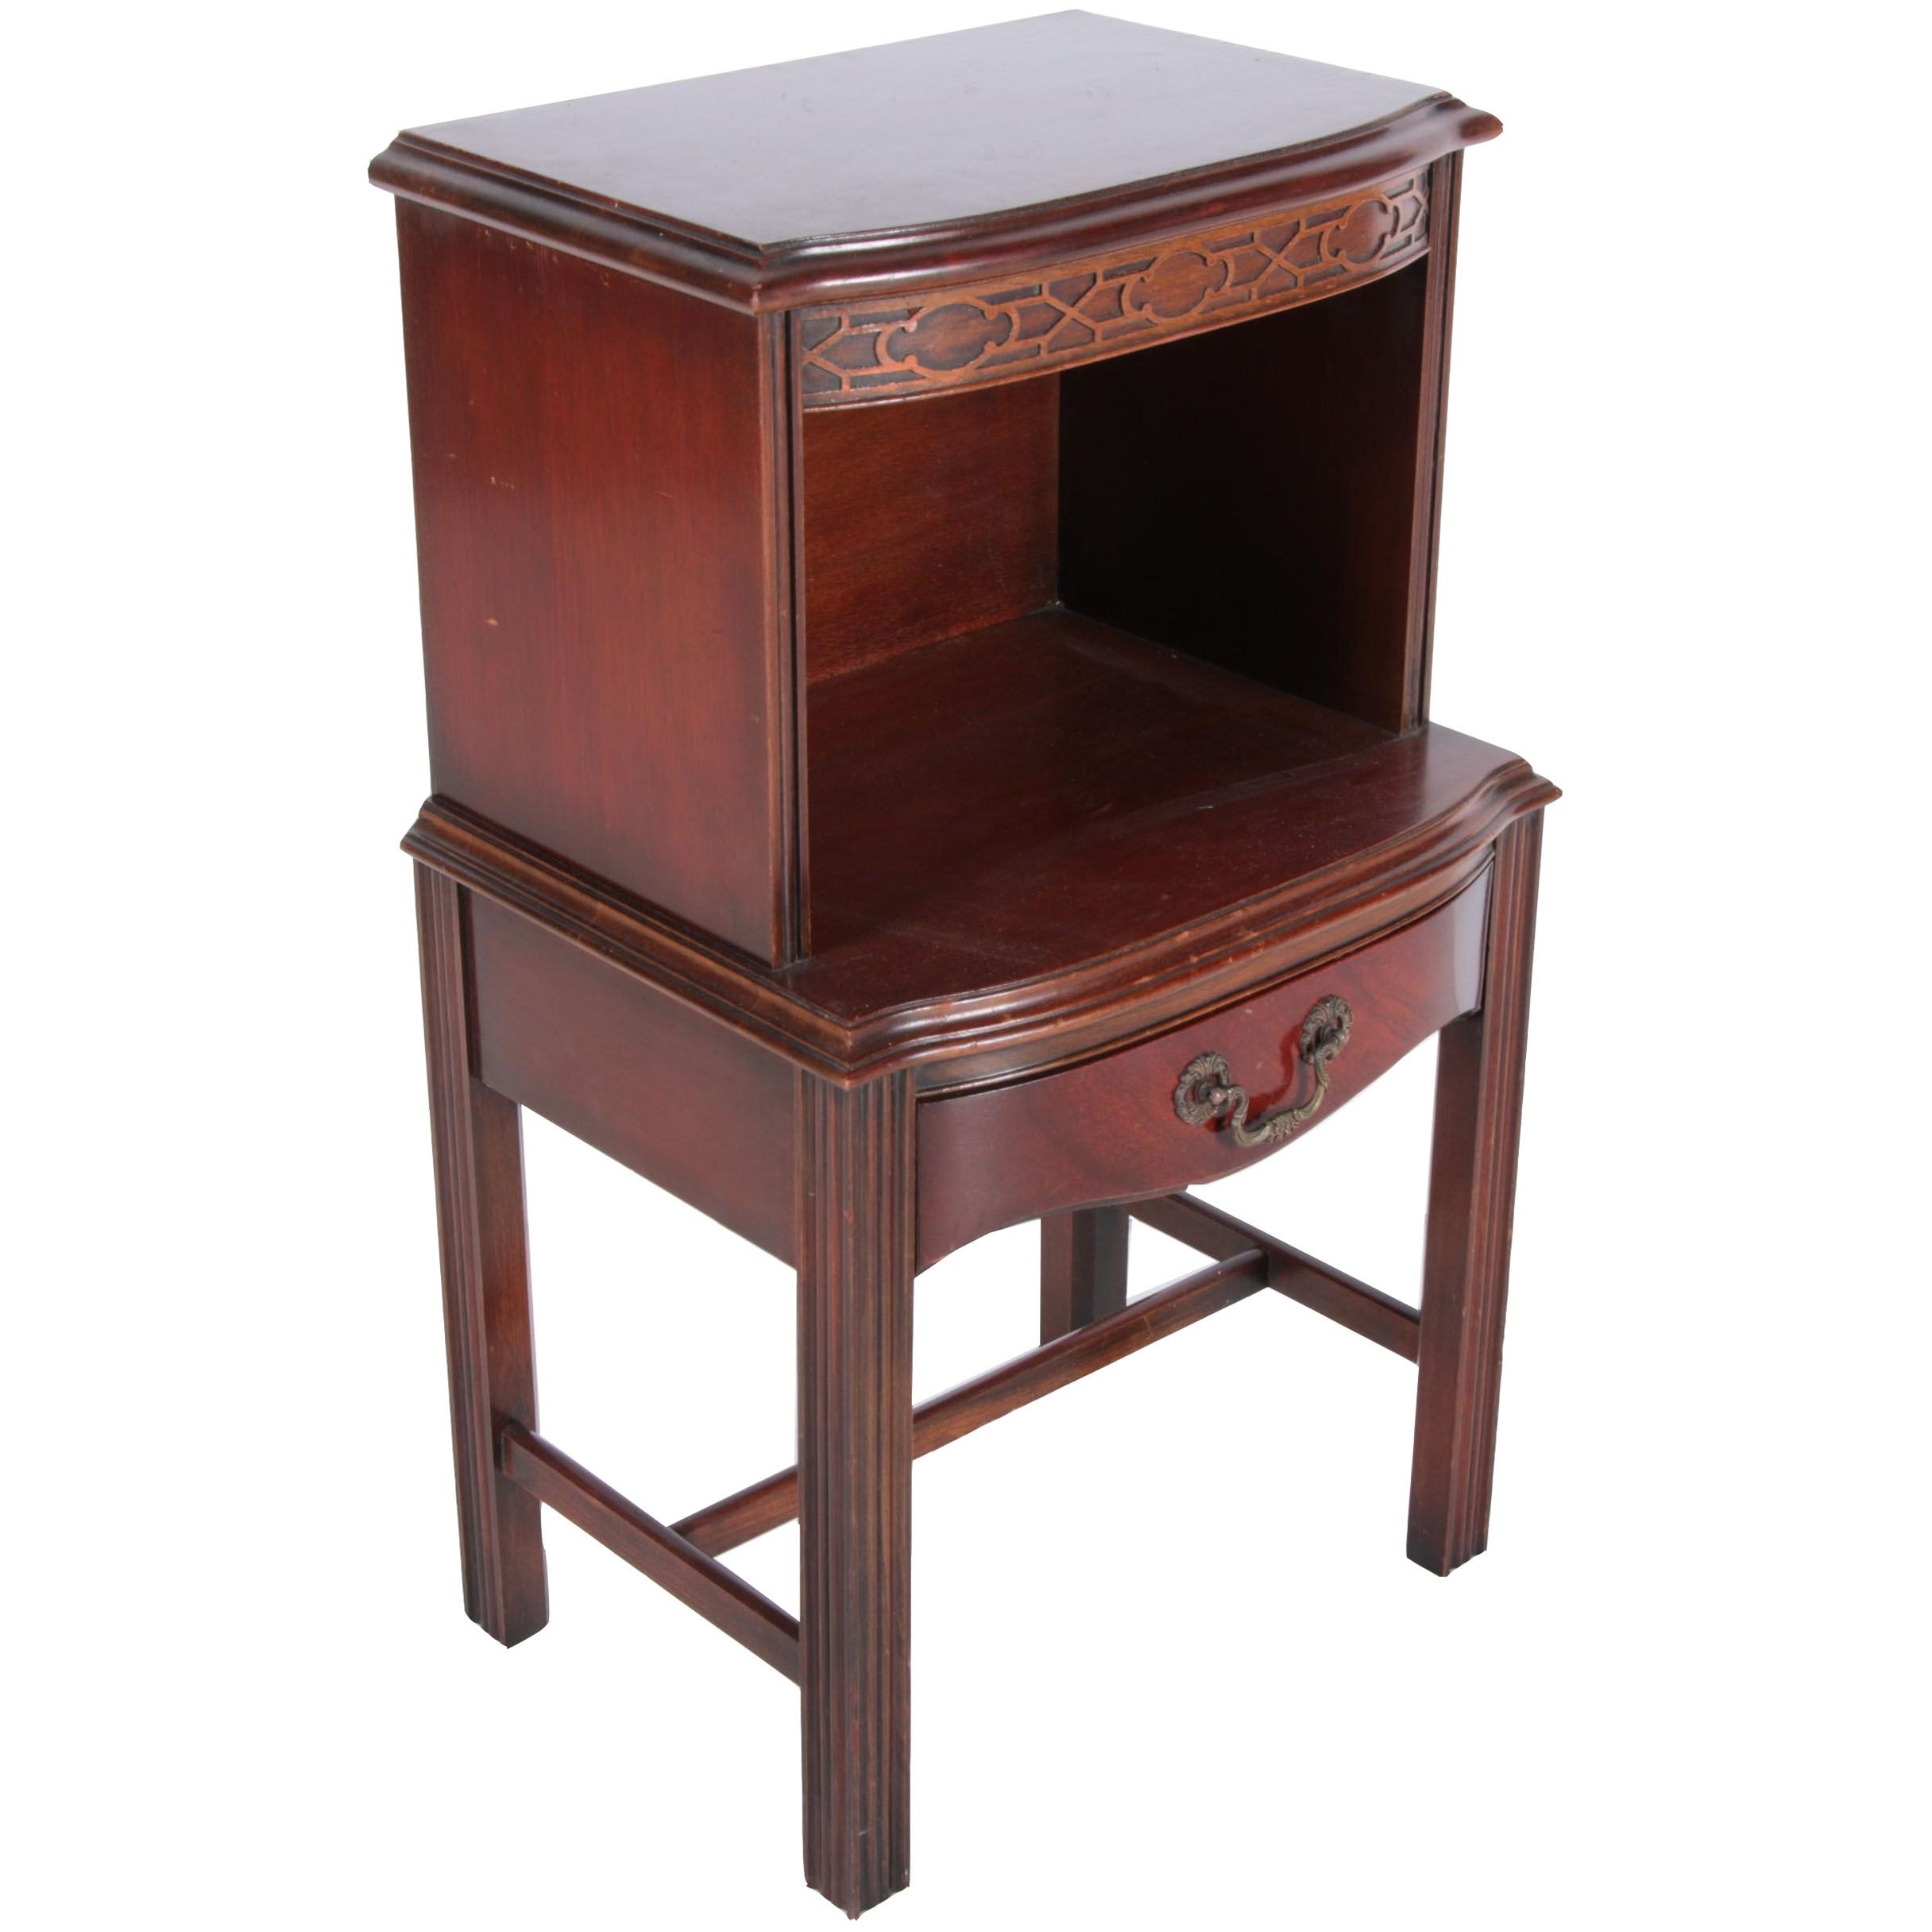 Drexel Tiered Side Table